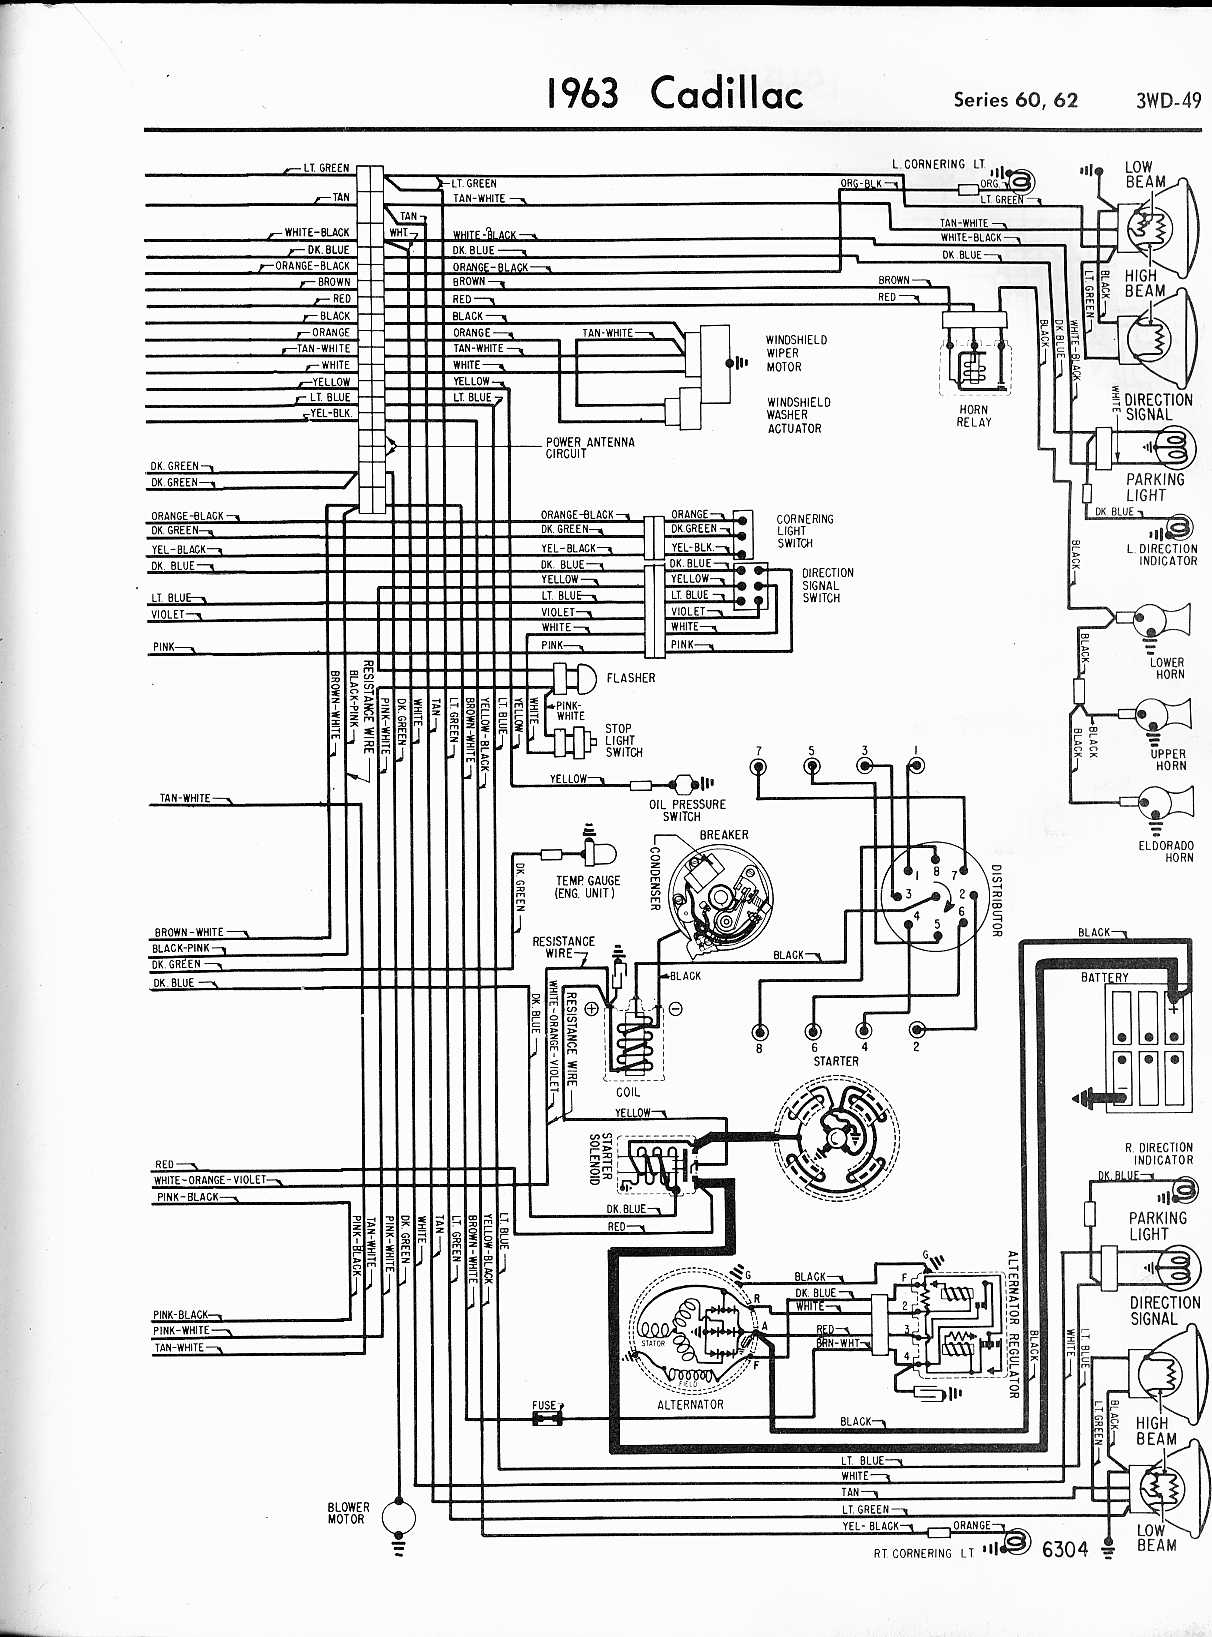 1978 Ford 351m Vacuum Diagram in addition 21 besides 25 additionally RepairGuideContent further Air Intake Injection For Porsche Cars. on car vacuum diagrams